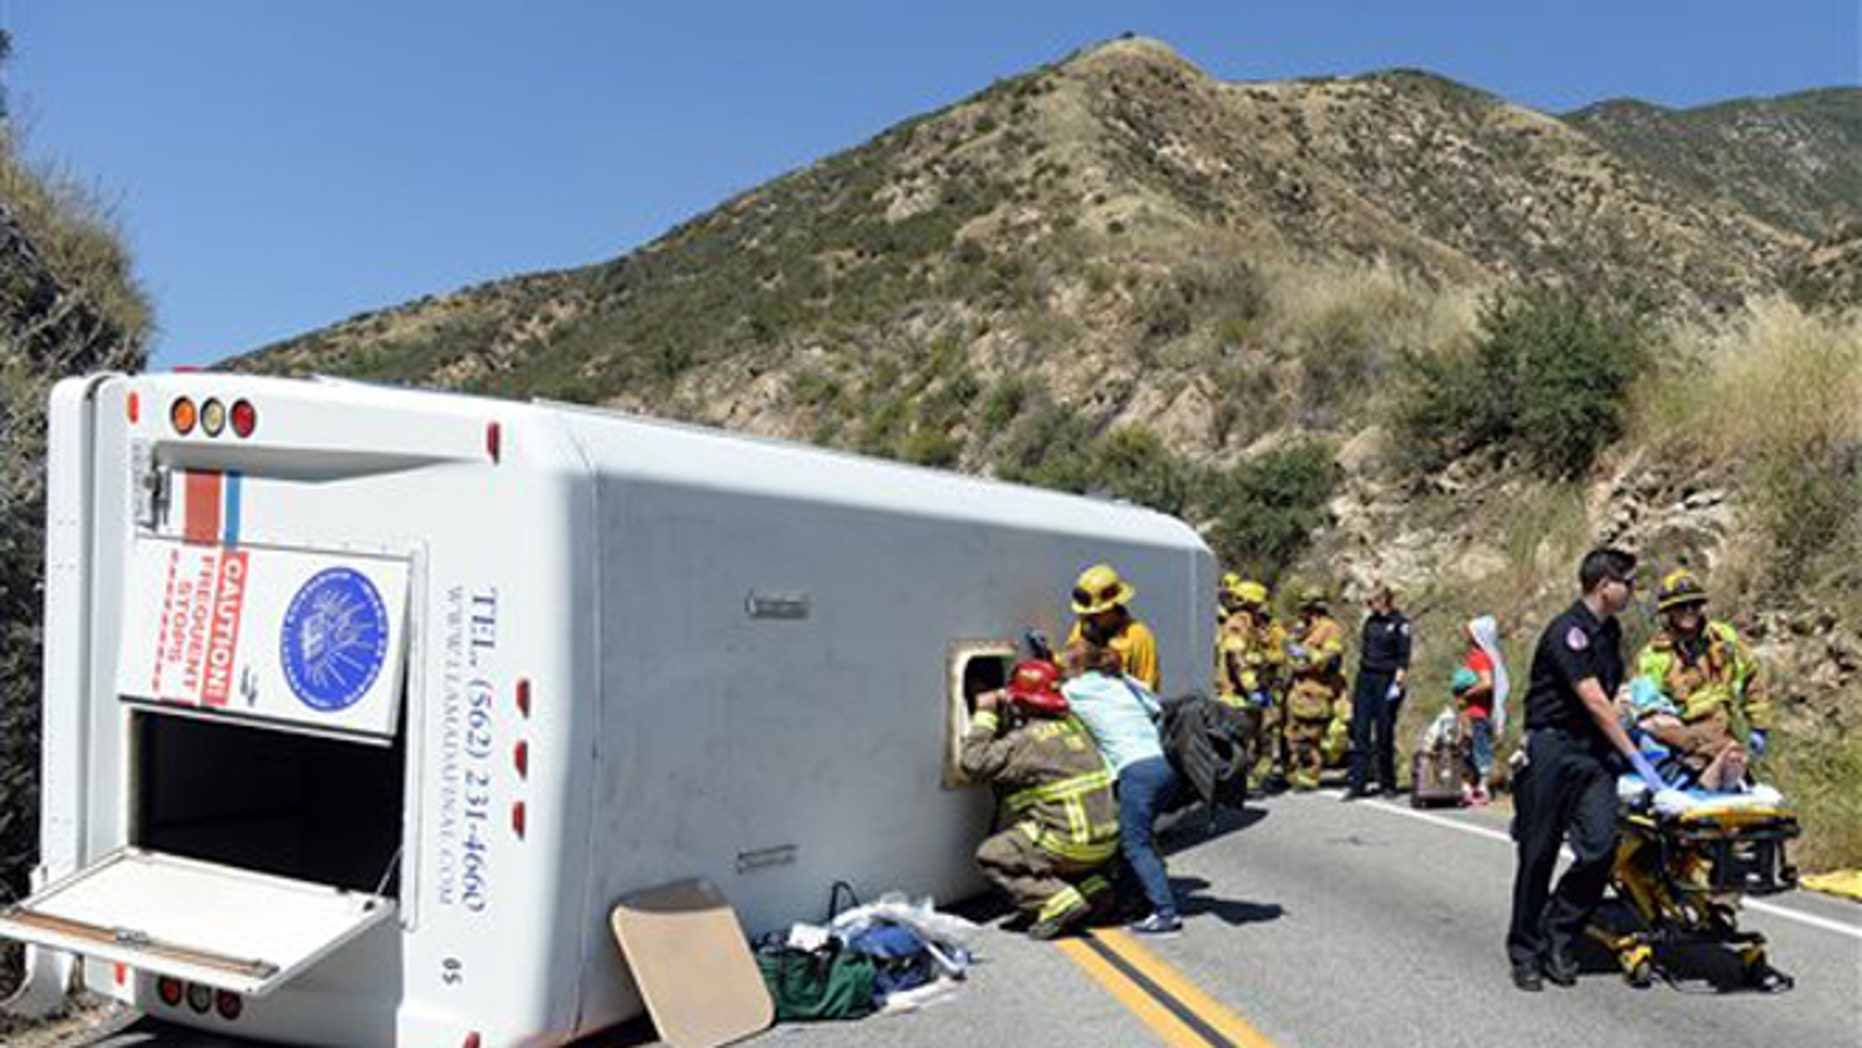 Approximately 20 people were injured, 4 with major injuries, after a small tour bus crashed and rolled over on highway 330 approximately 2 miles north of the 210 freeway Sunday, May 22, 2016